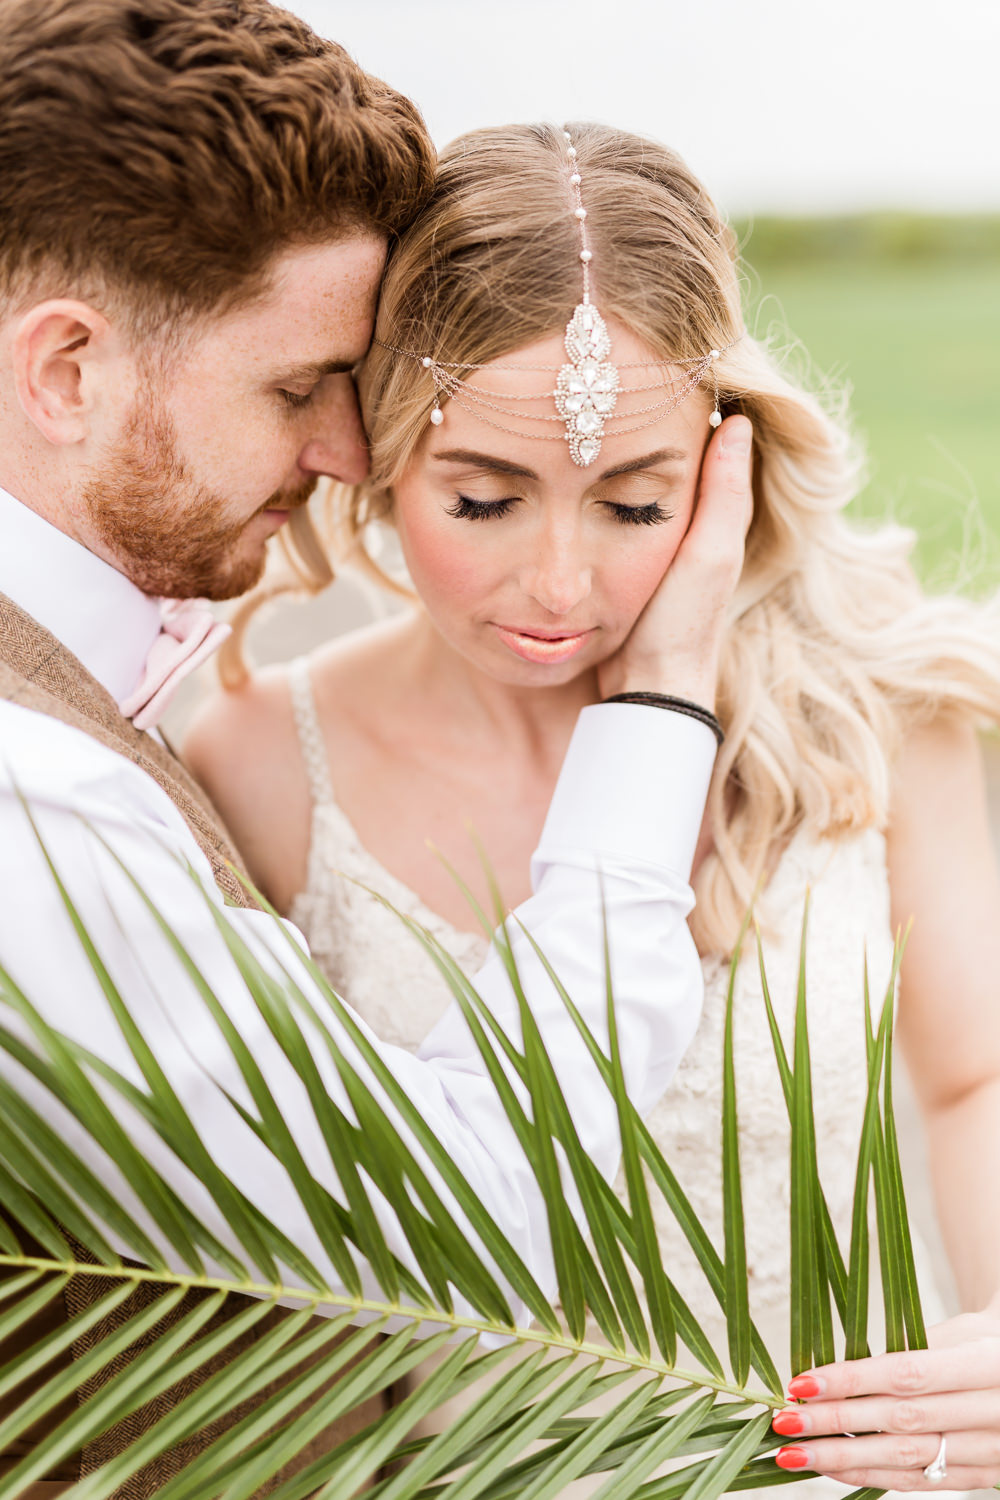 Bride Bridal Headdress Accessory Tropical Boho Countryside Wedding Ideas Sarah Brookes Photography